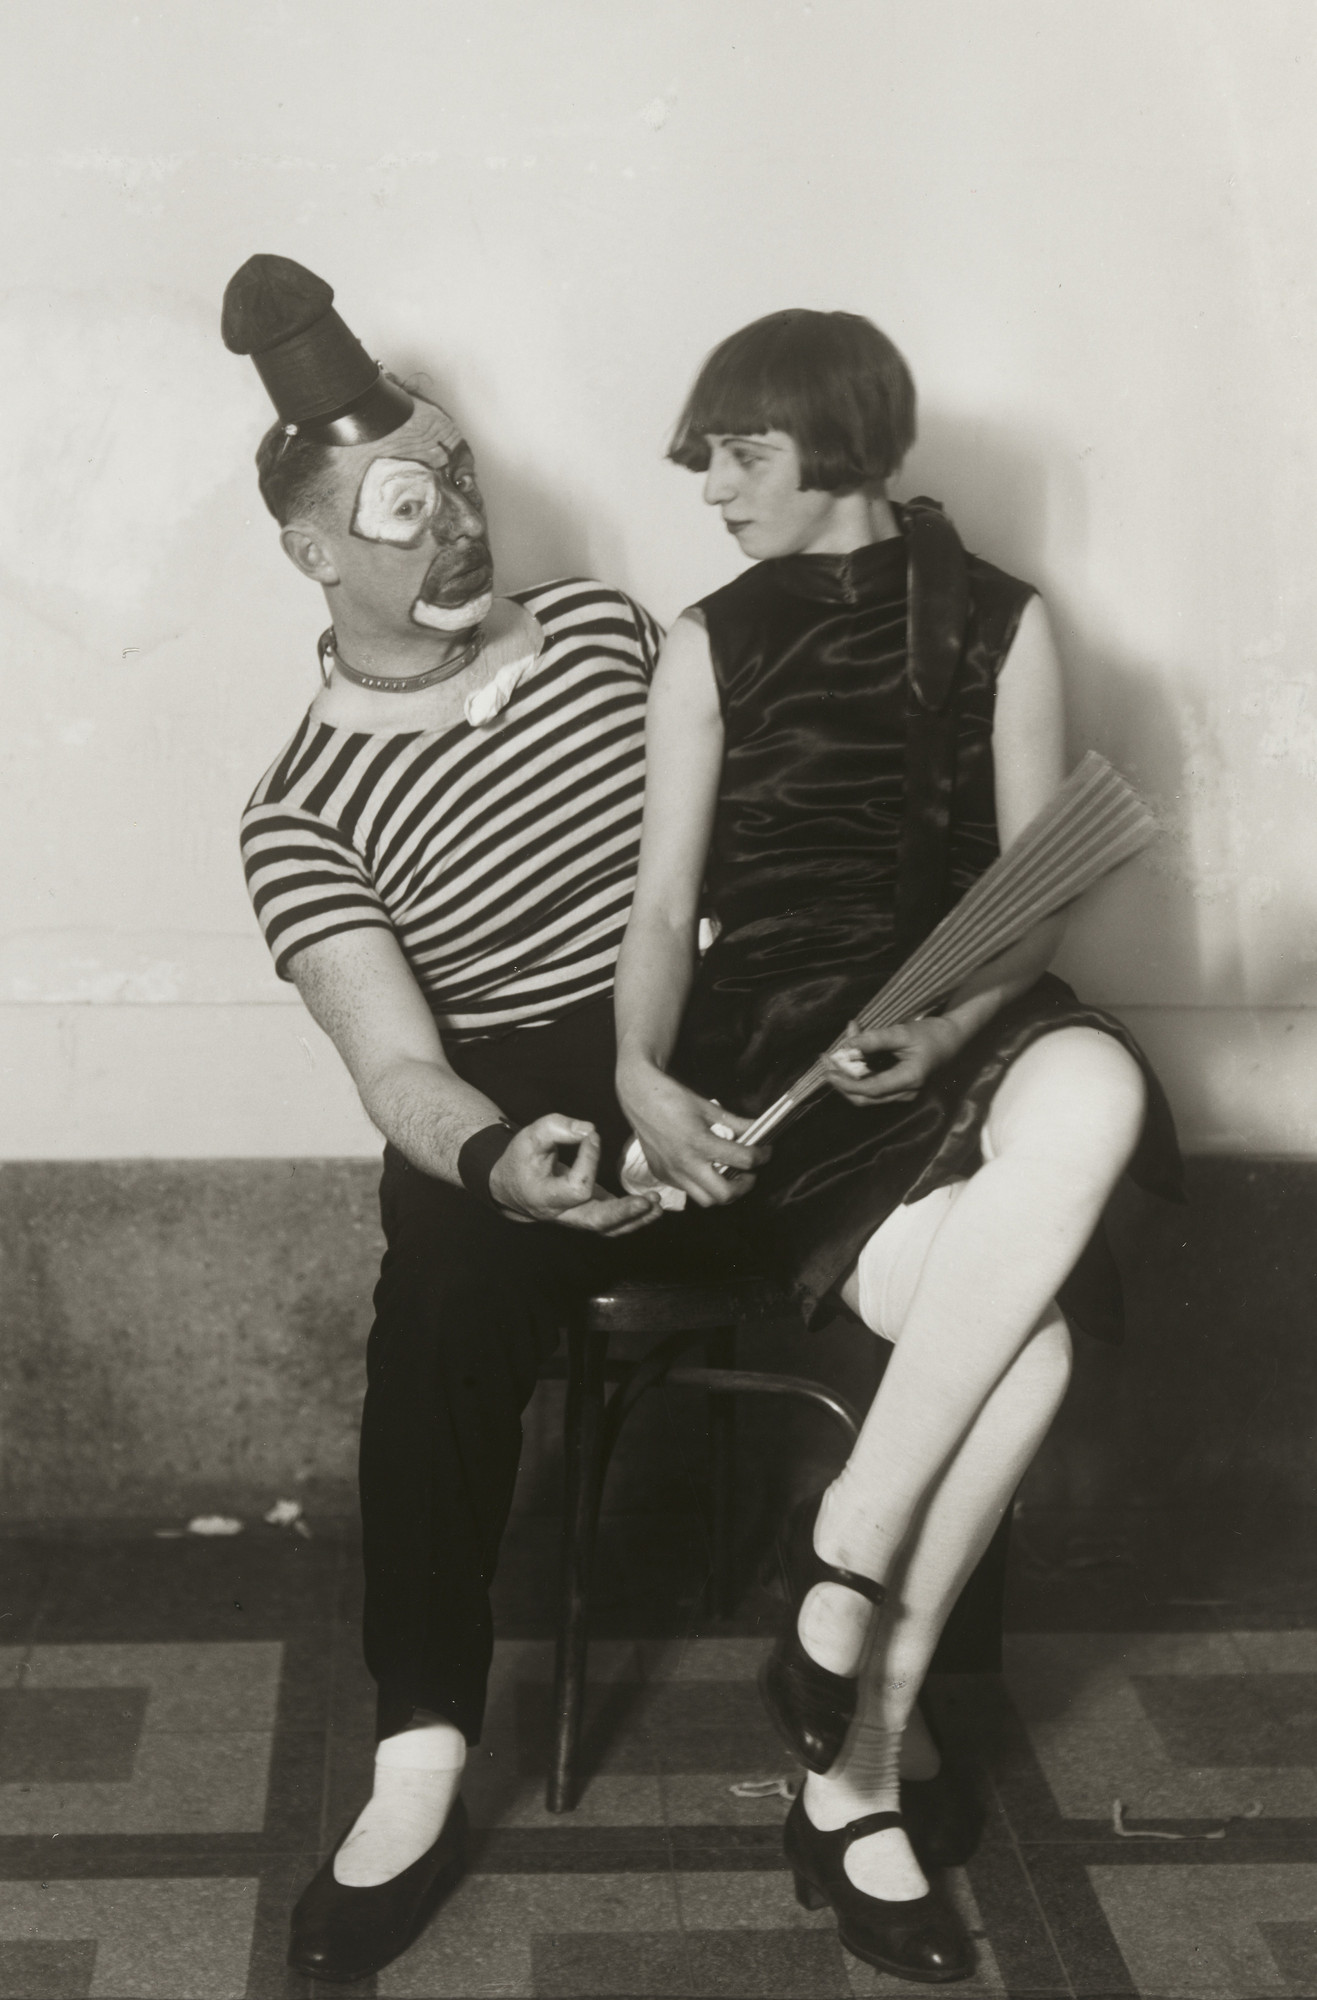 August Sander. Fancy-dress Ball. 1926